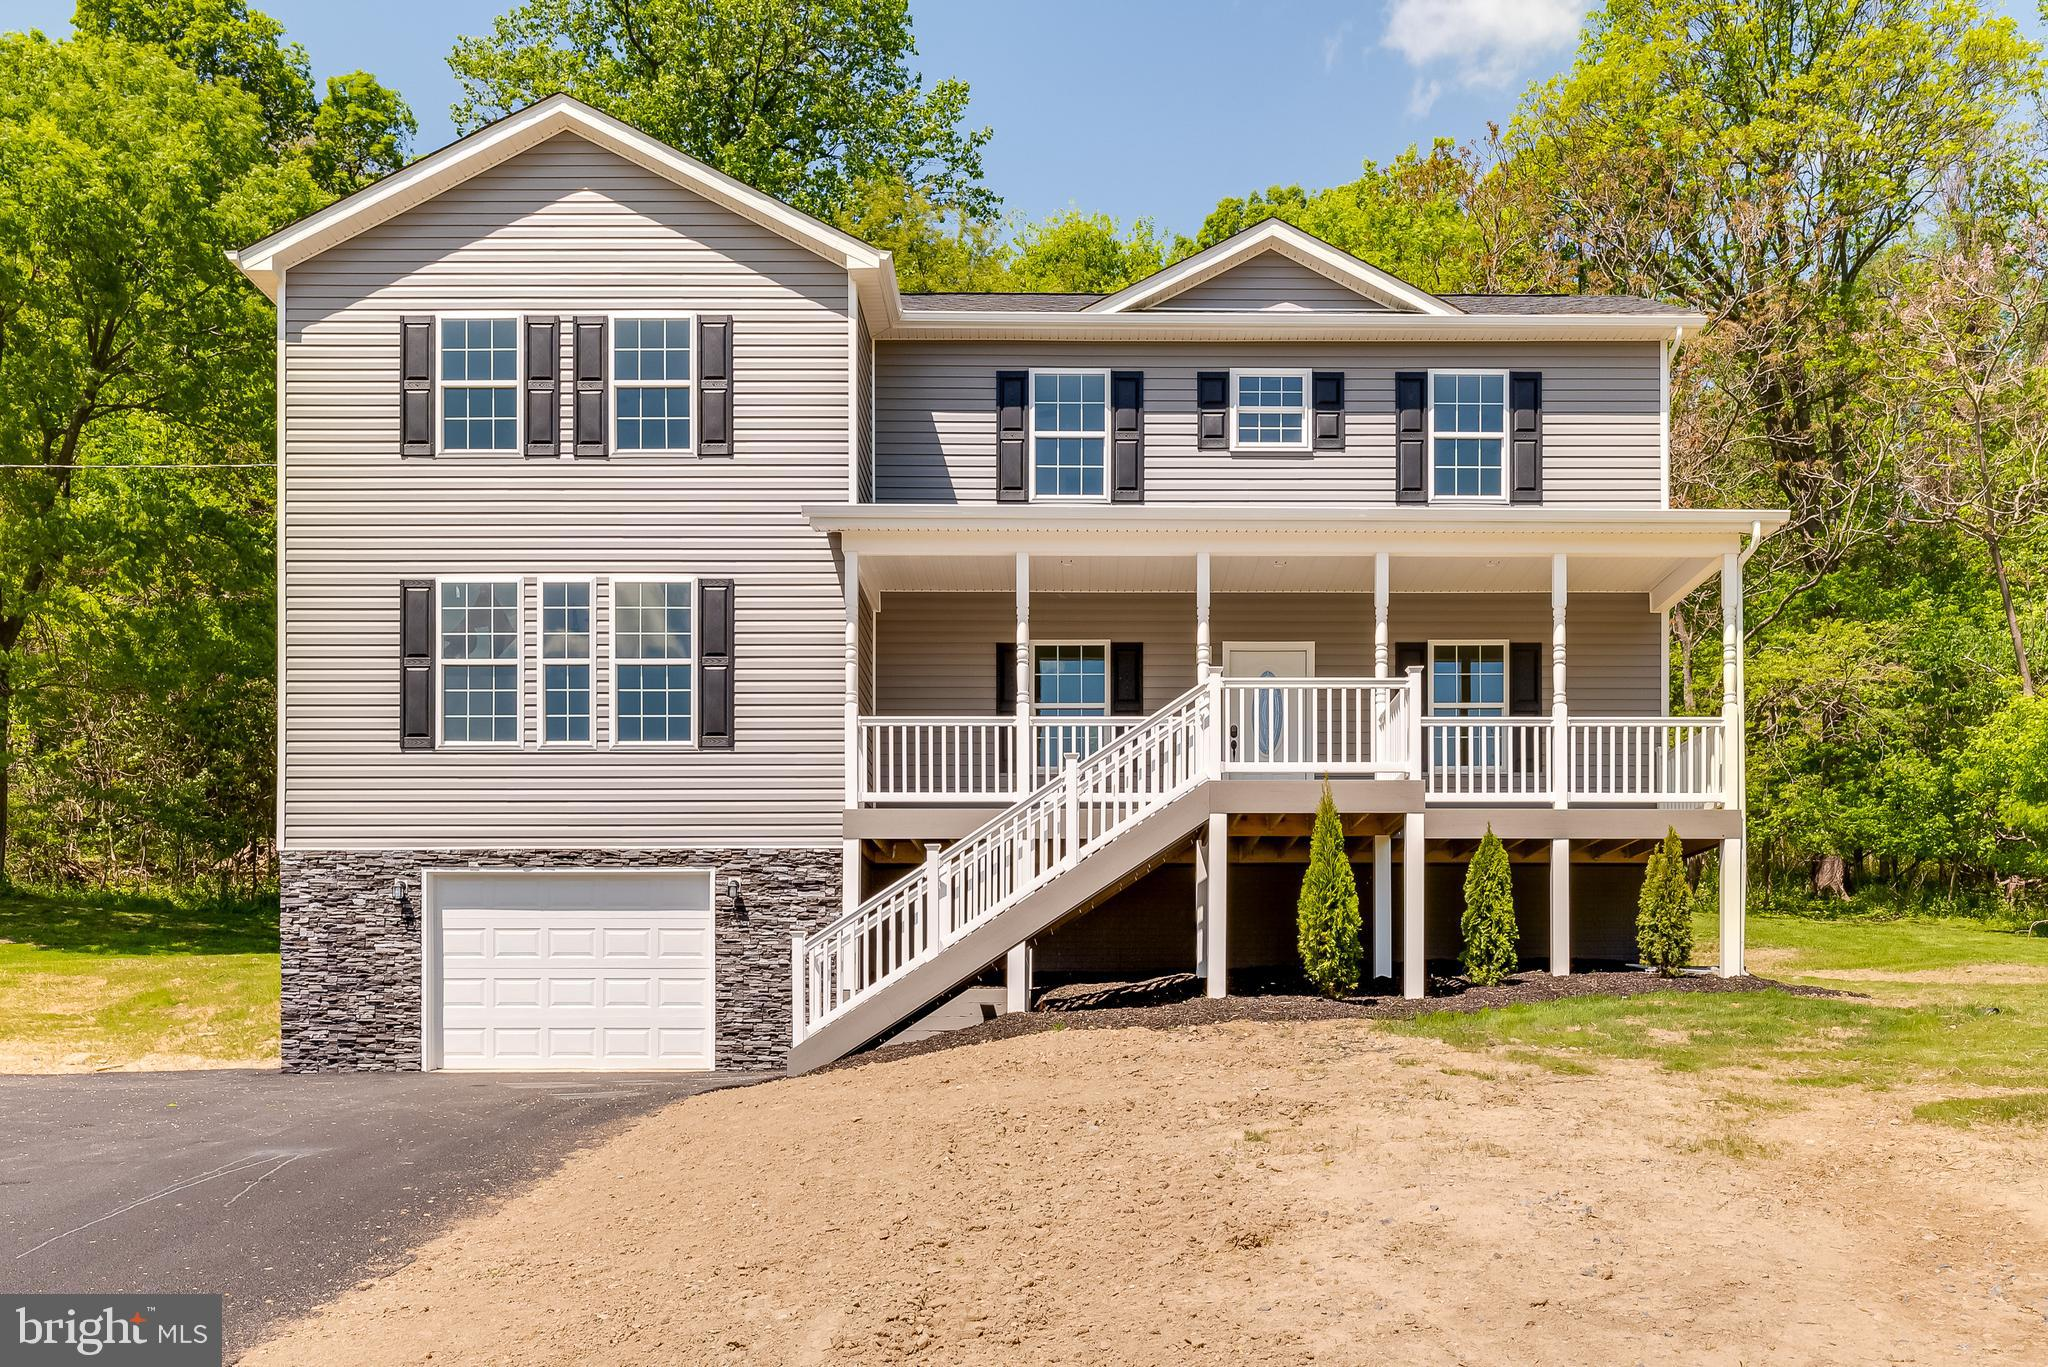 Welcome home to amazing views and over an acre of unrestricted land to call your own. The main level